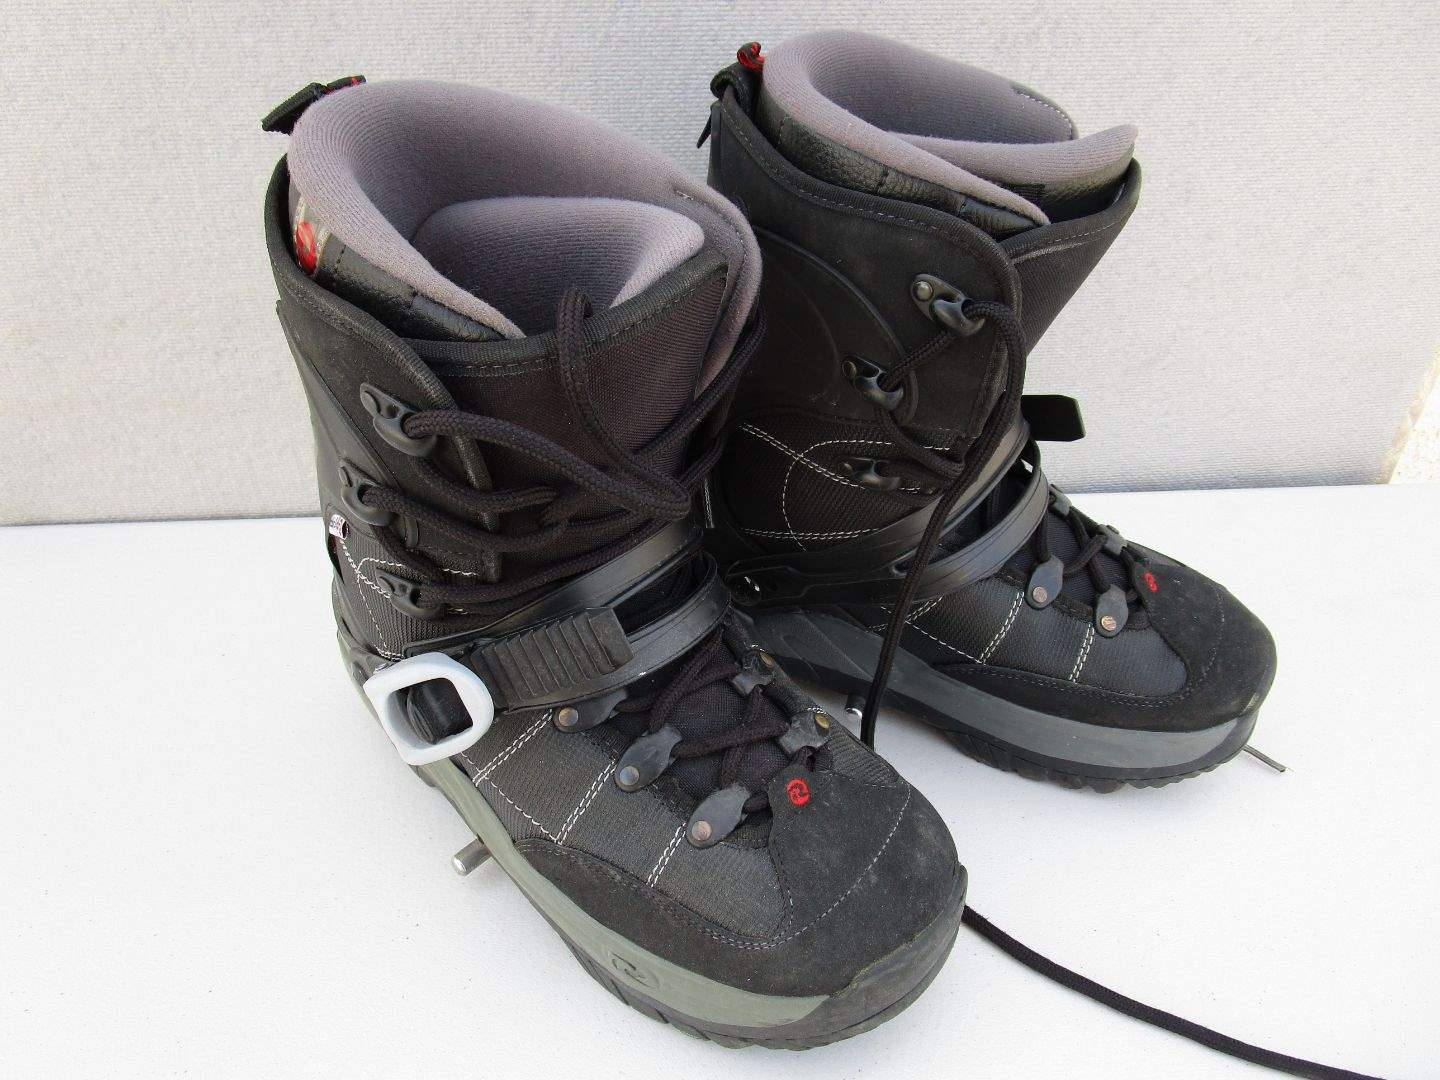 Lot # 69 - Rossignol Snow Board Boots - Size 10 (main image)